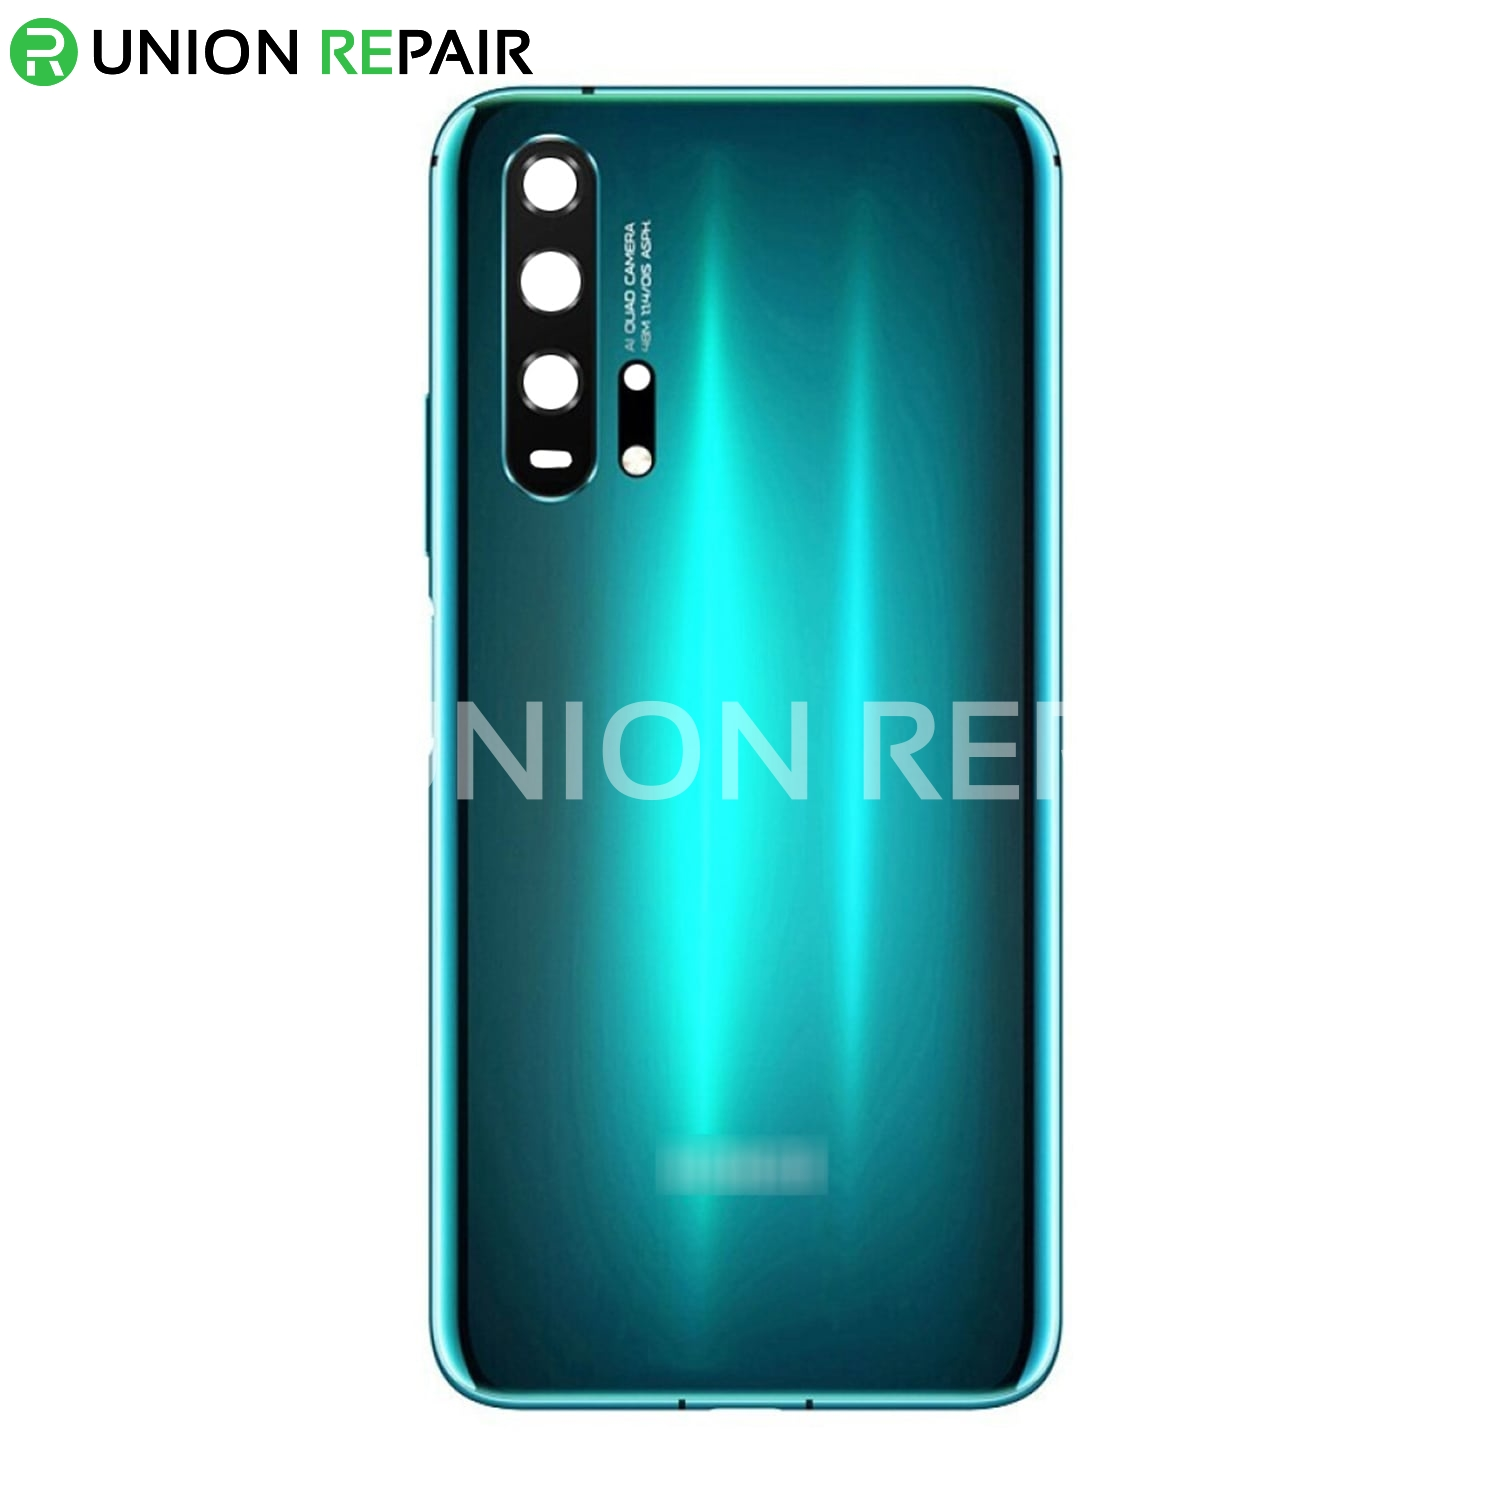 Replacement for Huawei Honor 20 Pro Battery Door - Phantom Blue